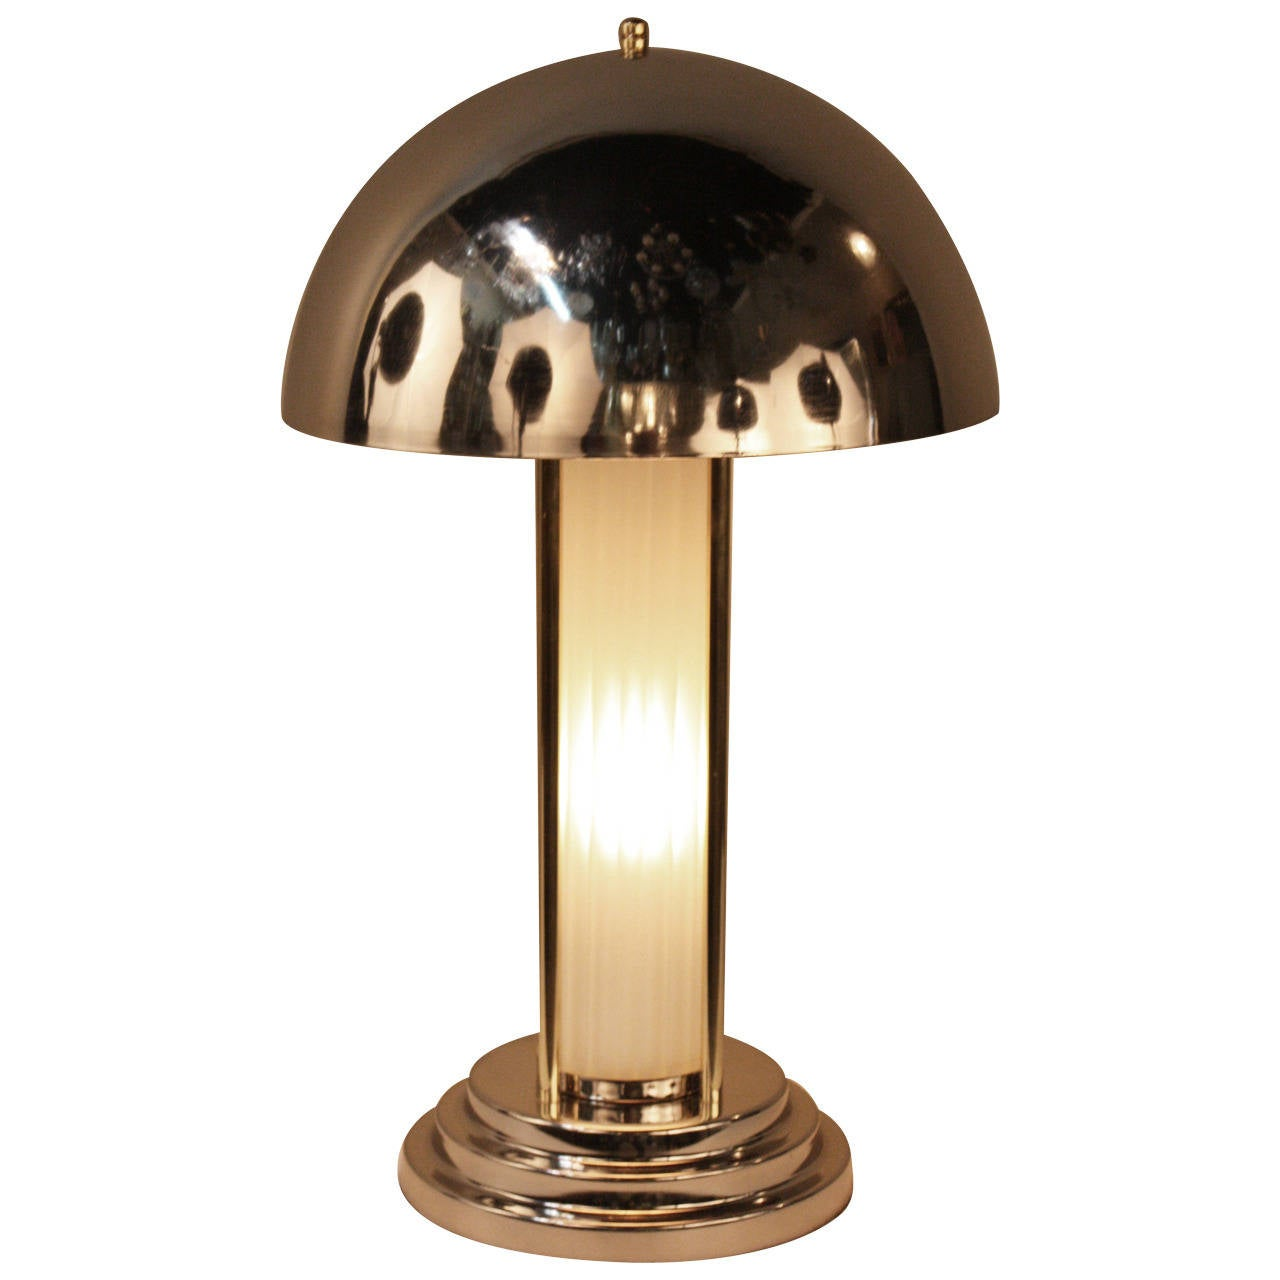 French Art Deco Table Lamp At 1stdibs